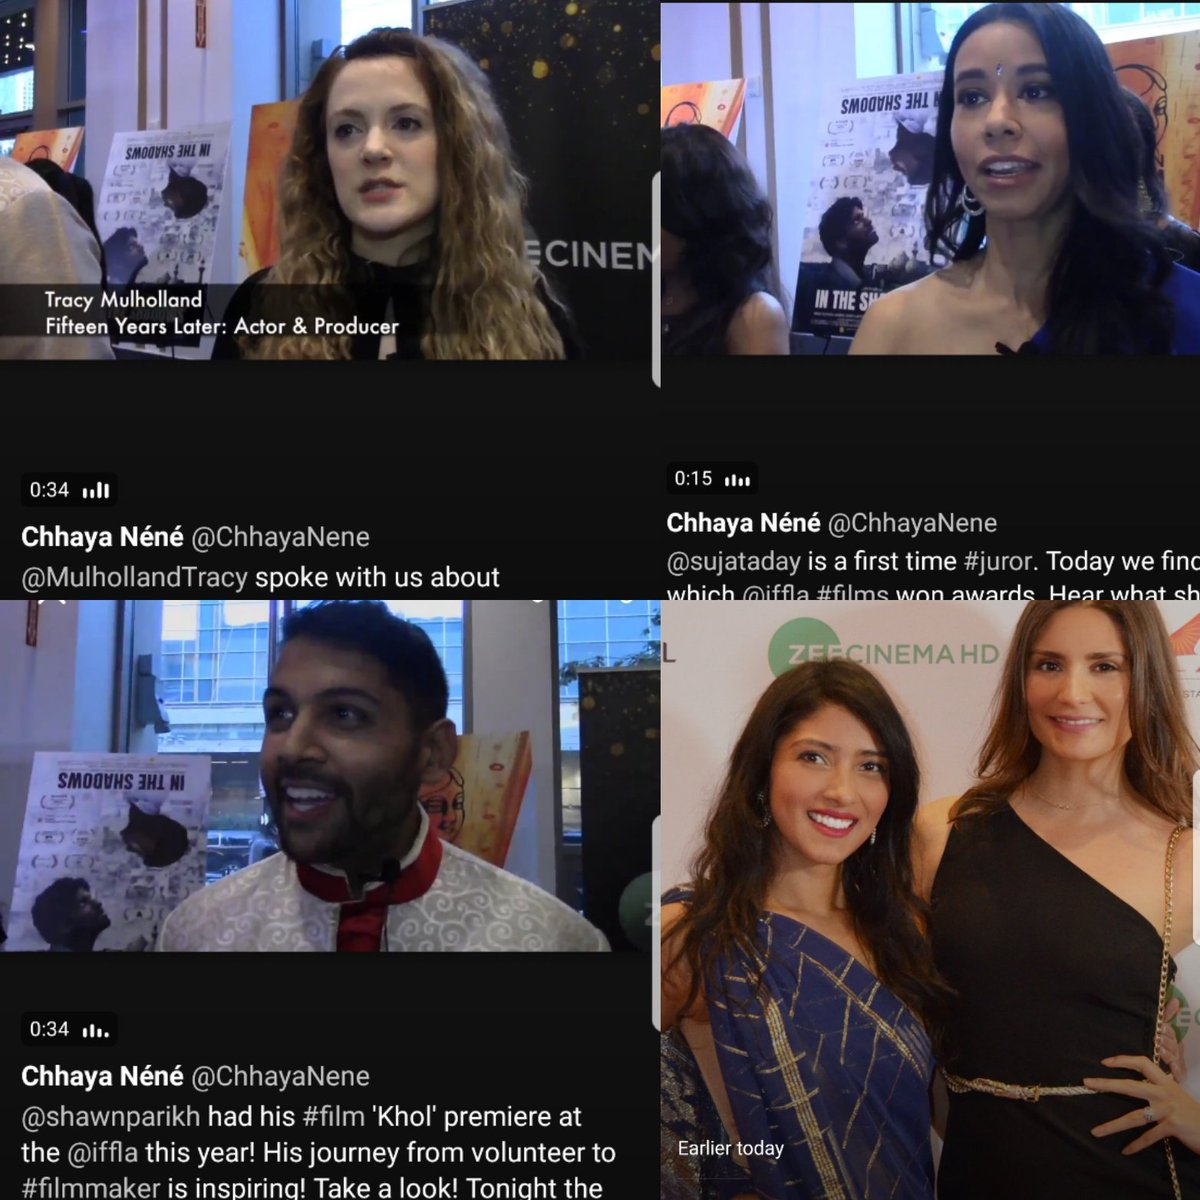 OMG. @Tatyfig &amp; I made #twittermoments today for our coverage of @iffla!! #iffla2018  thrilled that @ShawnParikh @sujataday &amp; @MulhollandTracy are a part of the moment!! Go see their #films &amp; or their work!   http:// bit.ly/2JCgCdj  &nbsp;   &lt;------ check it out!<br>http://pic.twitter.com/tzTAA71EOy